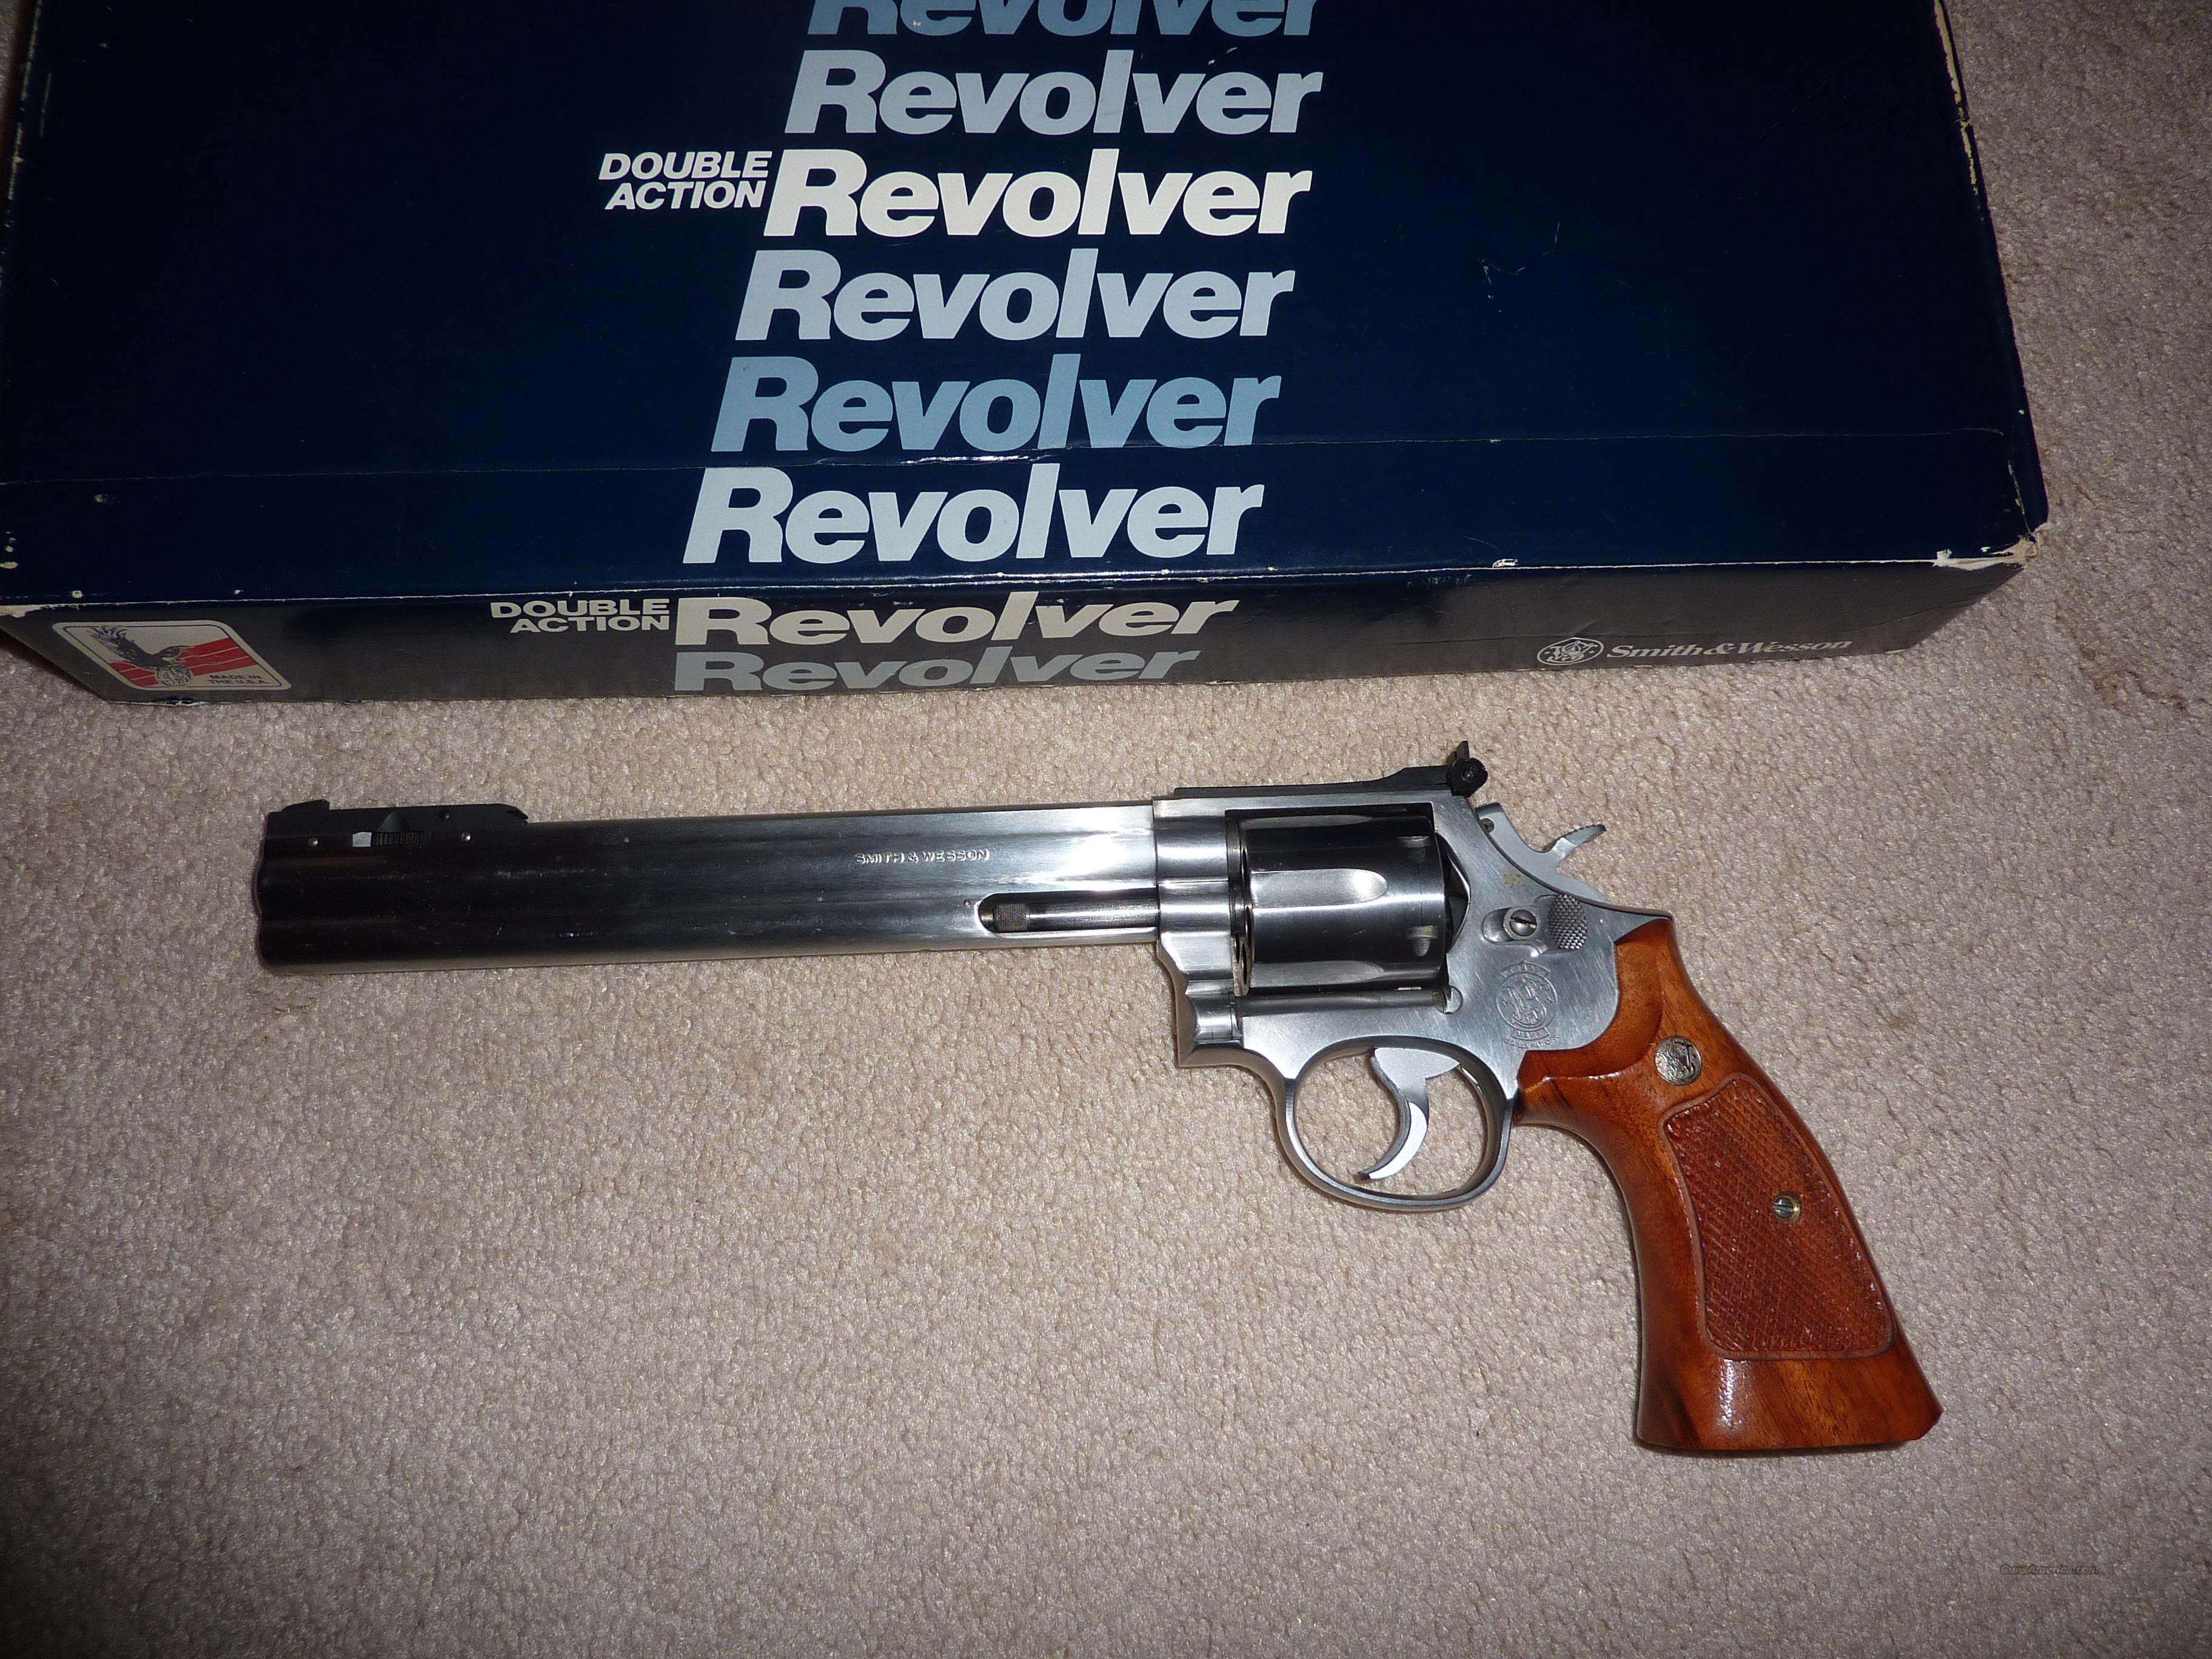 Smith & Wesson 357 'dirty Harry' type revolver for sale